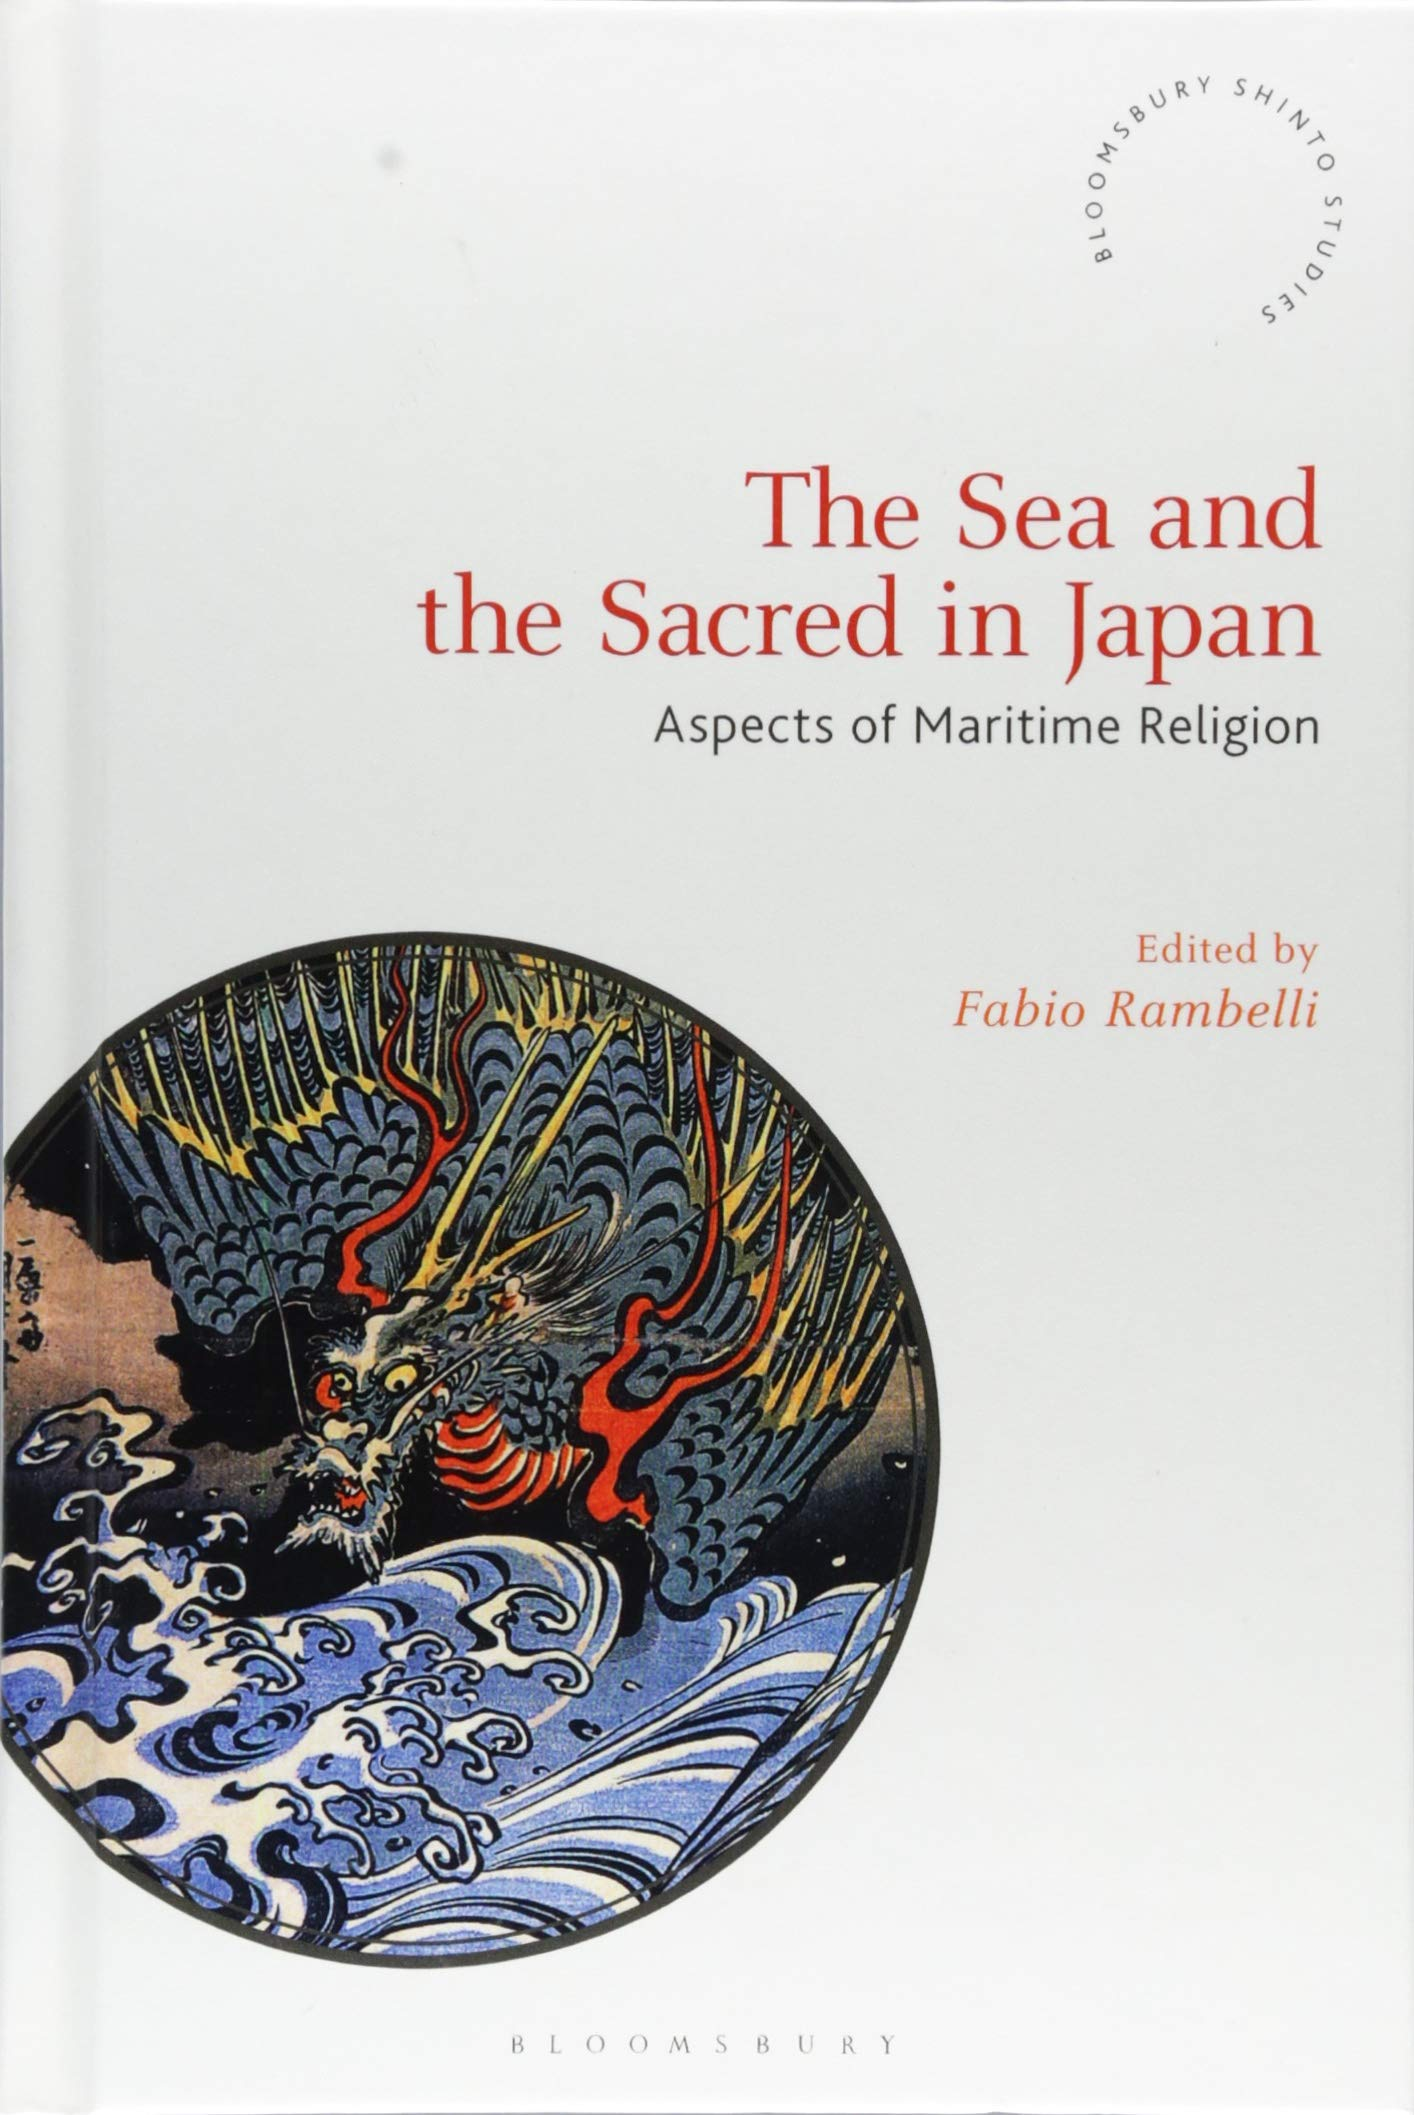 The Sea and the Sacred in Japan: Aspects of